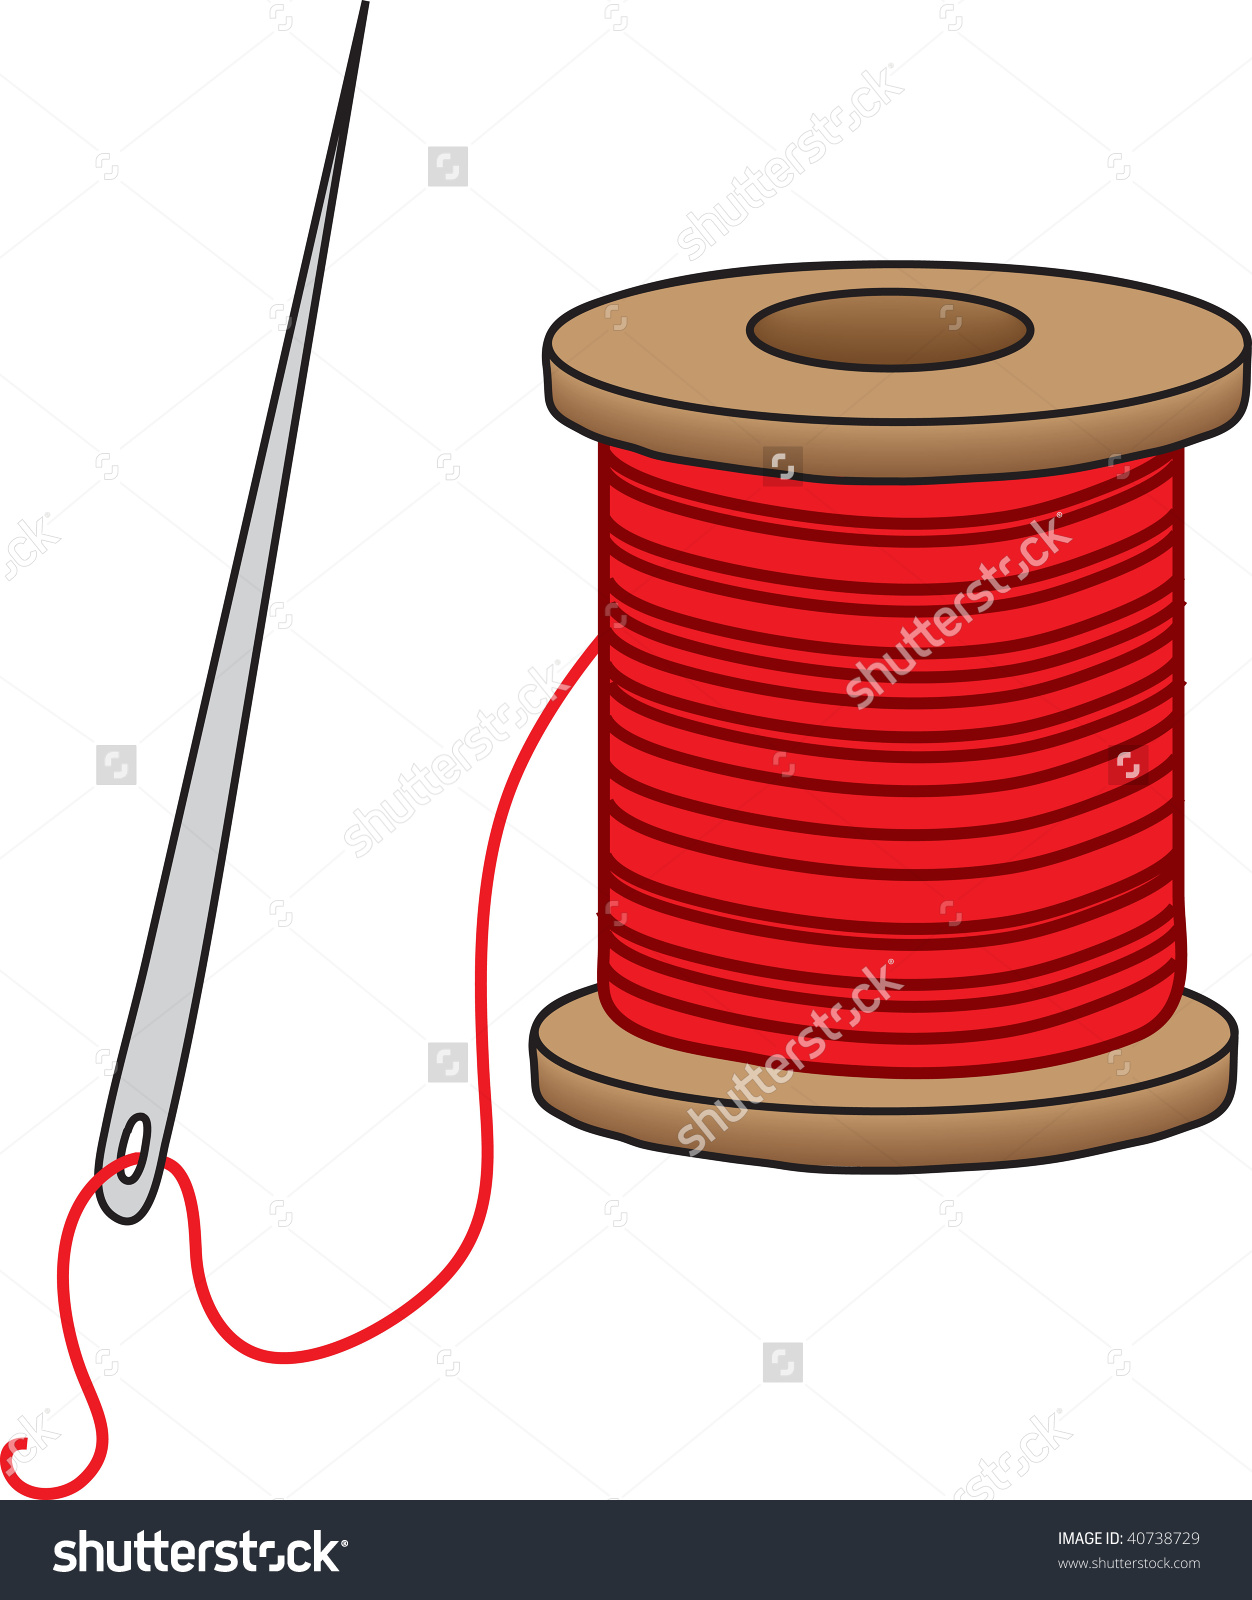 Clipart Illustration Sewing Needle Spool Red Stock Illustration.